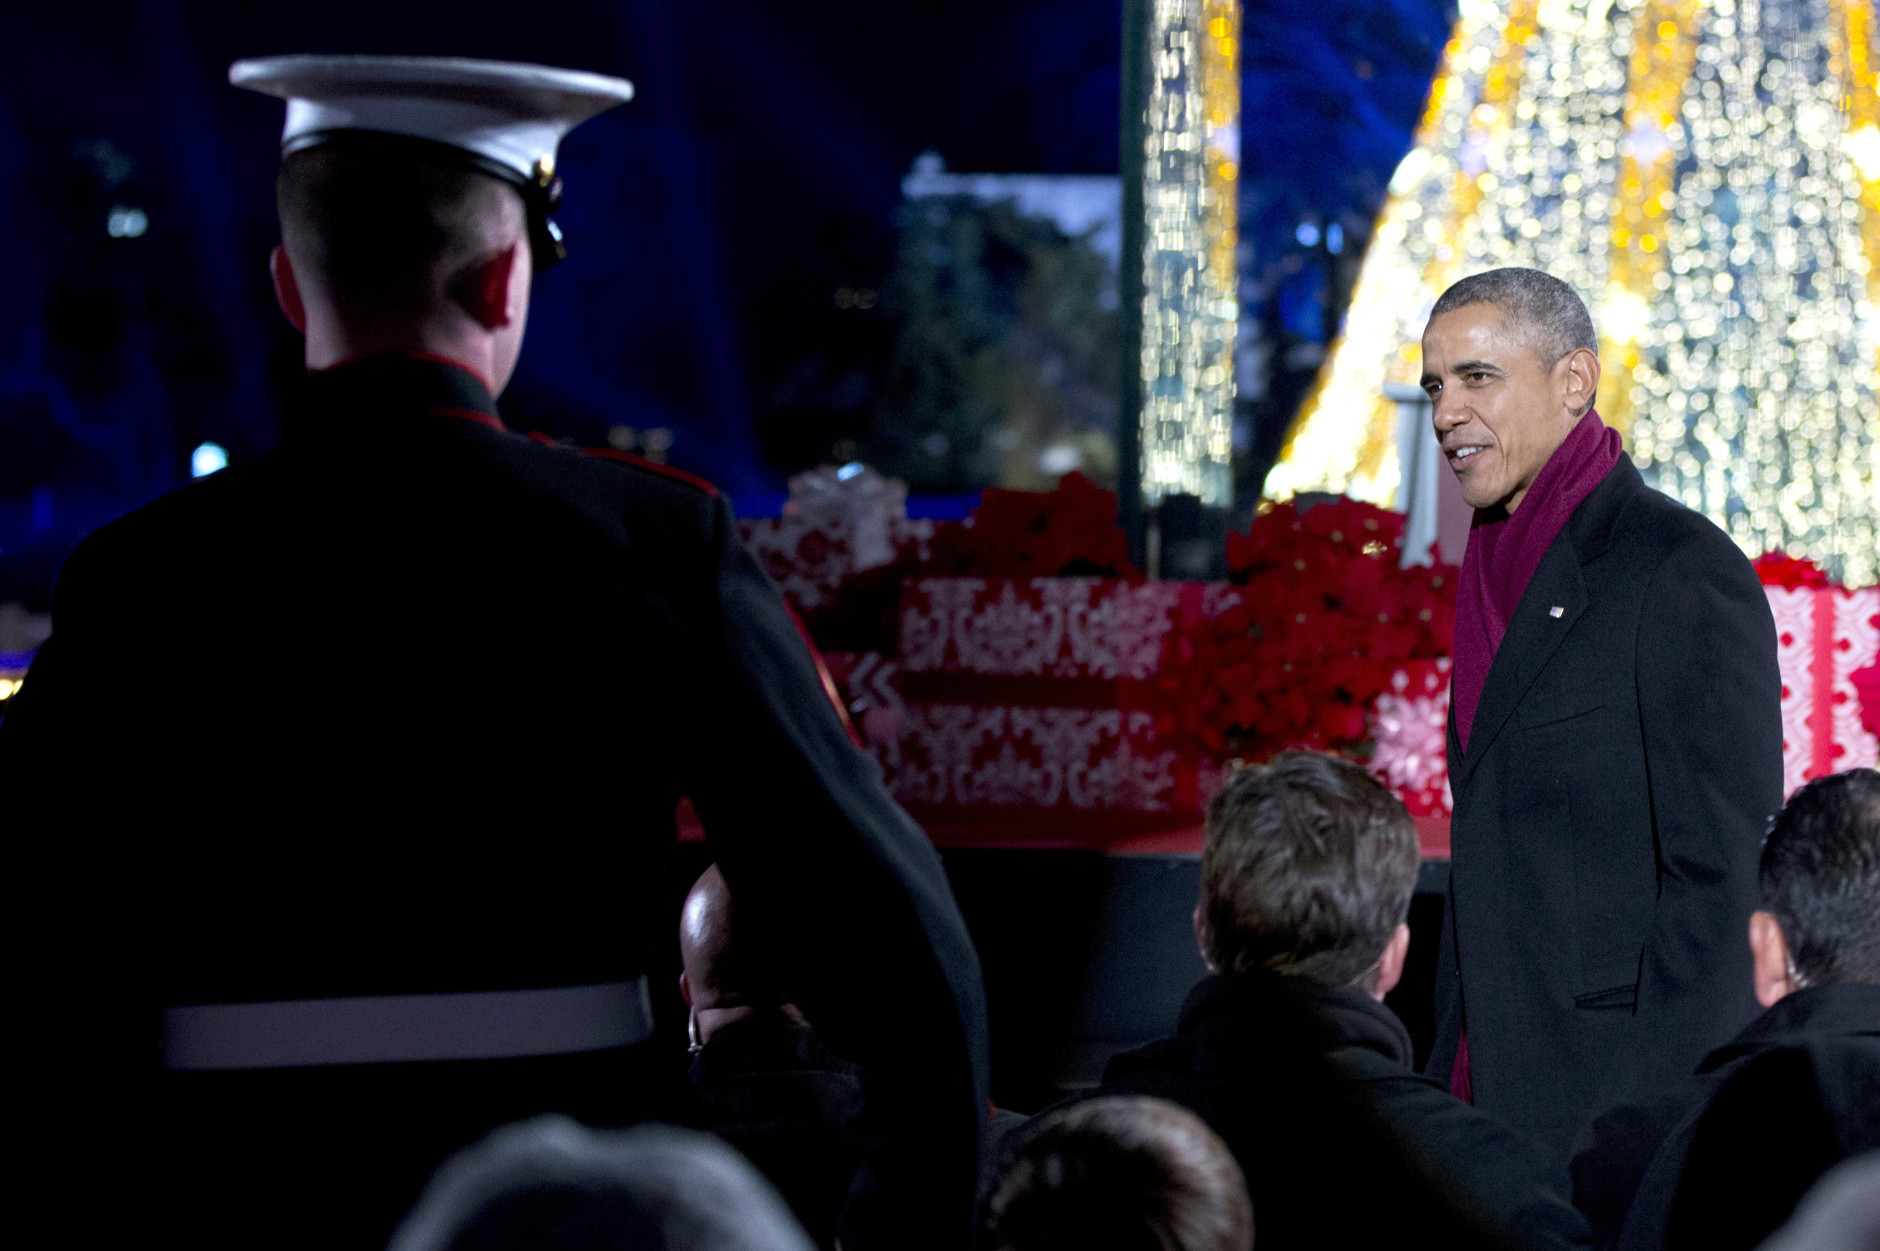 President Barack Obama looks to a member of the military as he walks to his seat during the  National Christmas Tree Lighting ceremony at the Ellipse in Washington, Thursday, Dec. 3, 2015. (AP Photo/Carolyn Kaster)